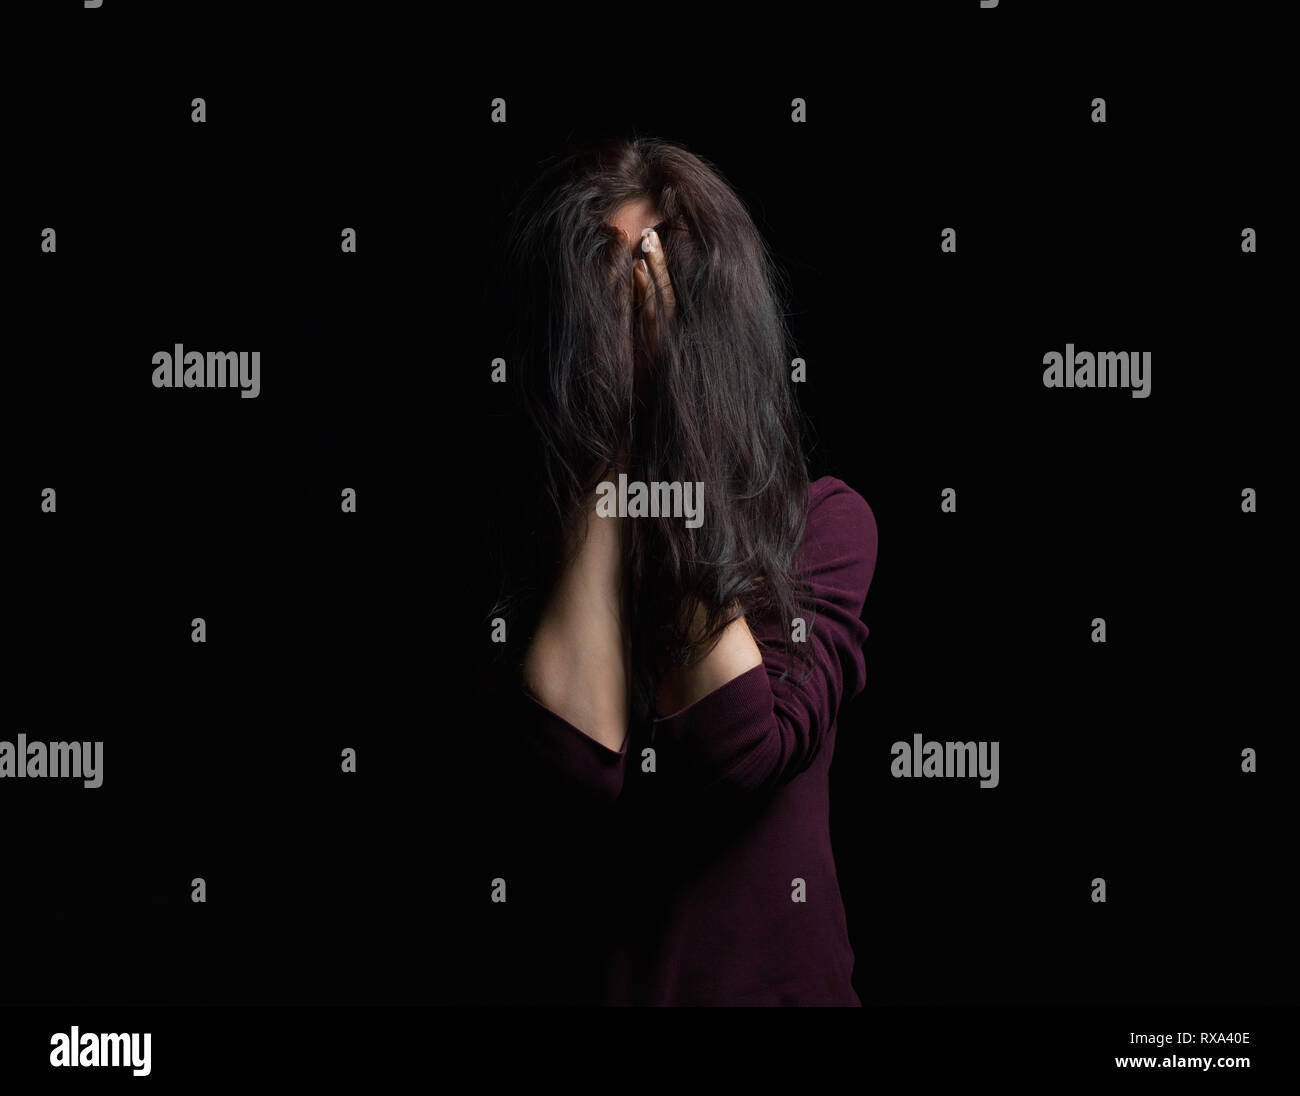 Woman covering face with hands while standing against black background - Stock Image